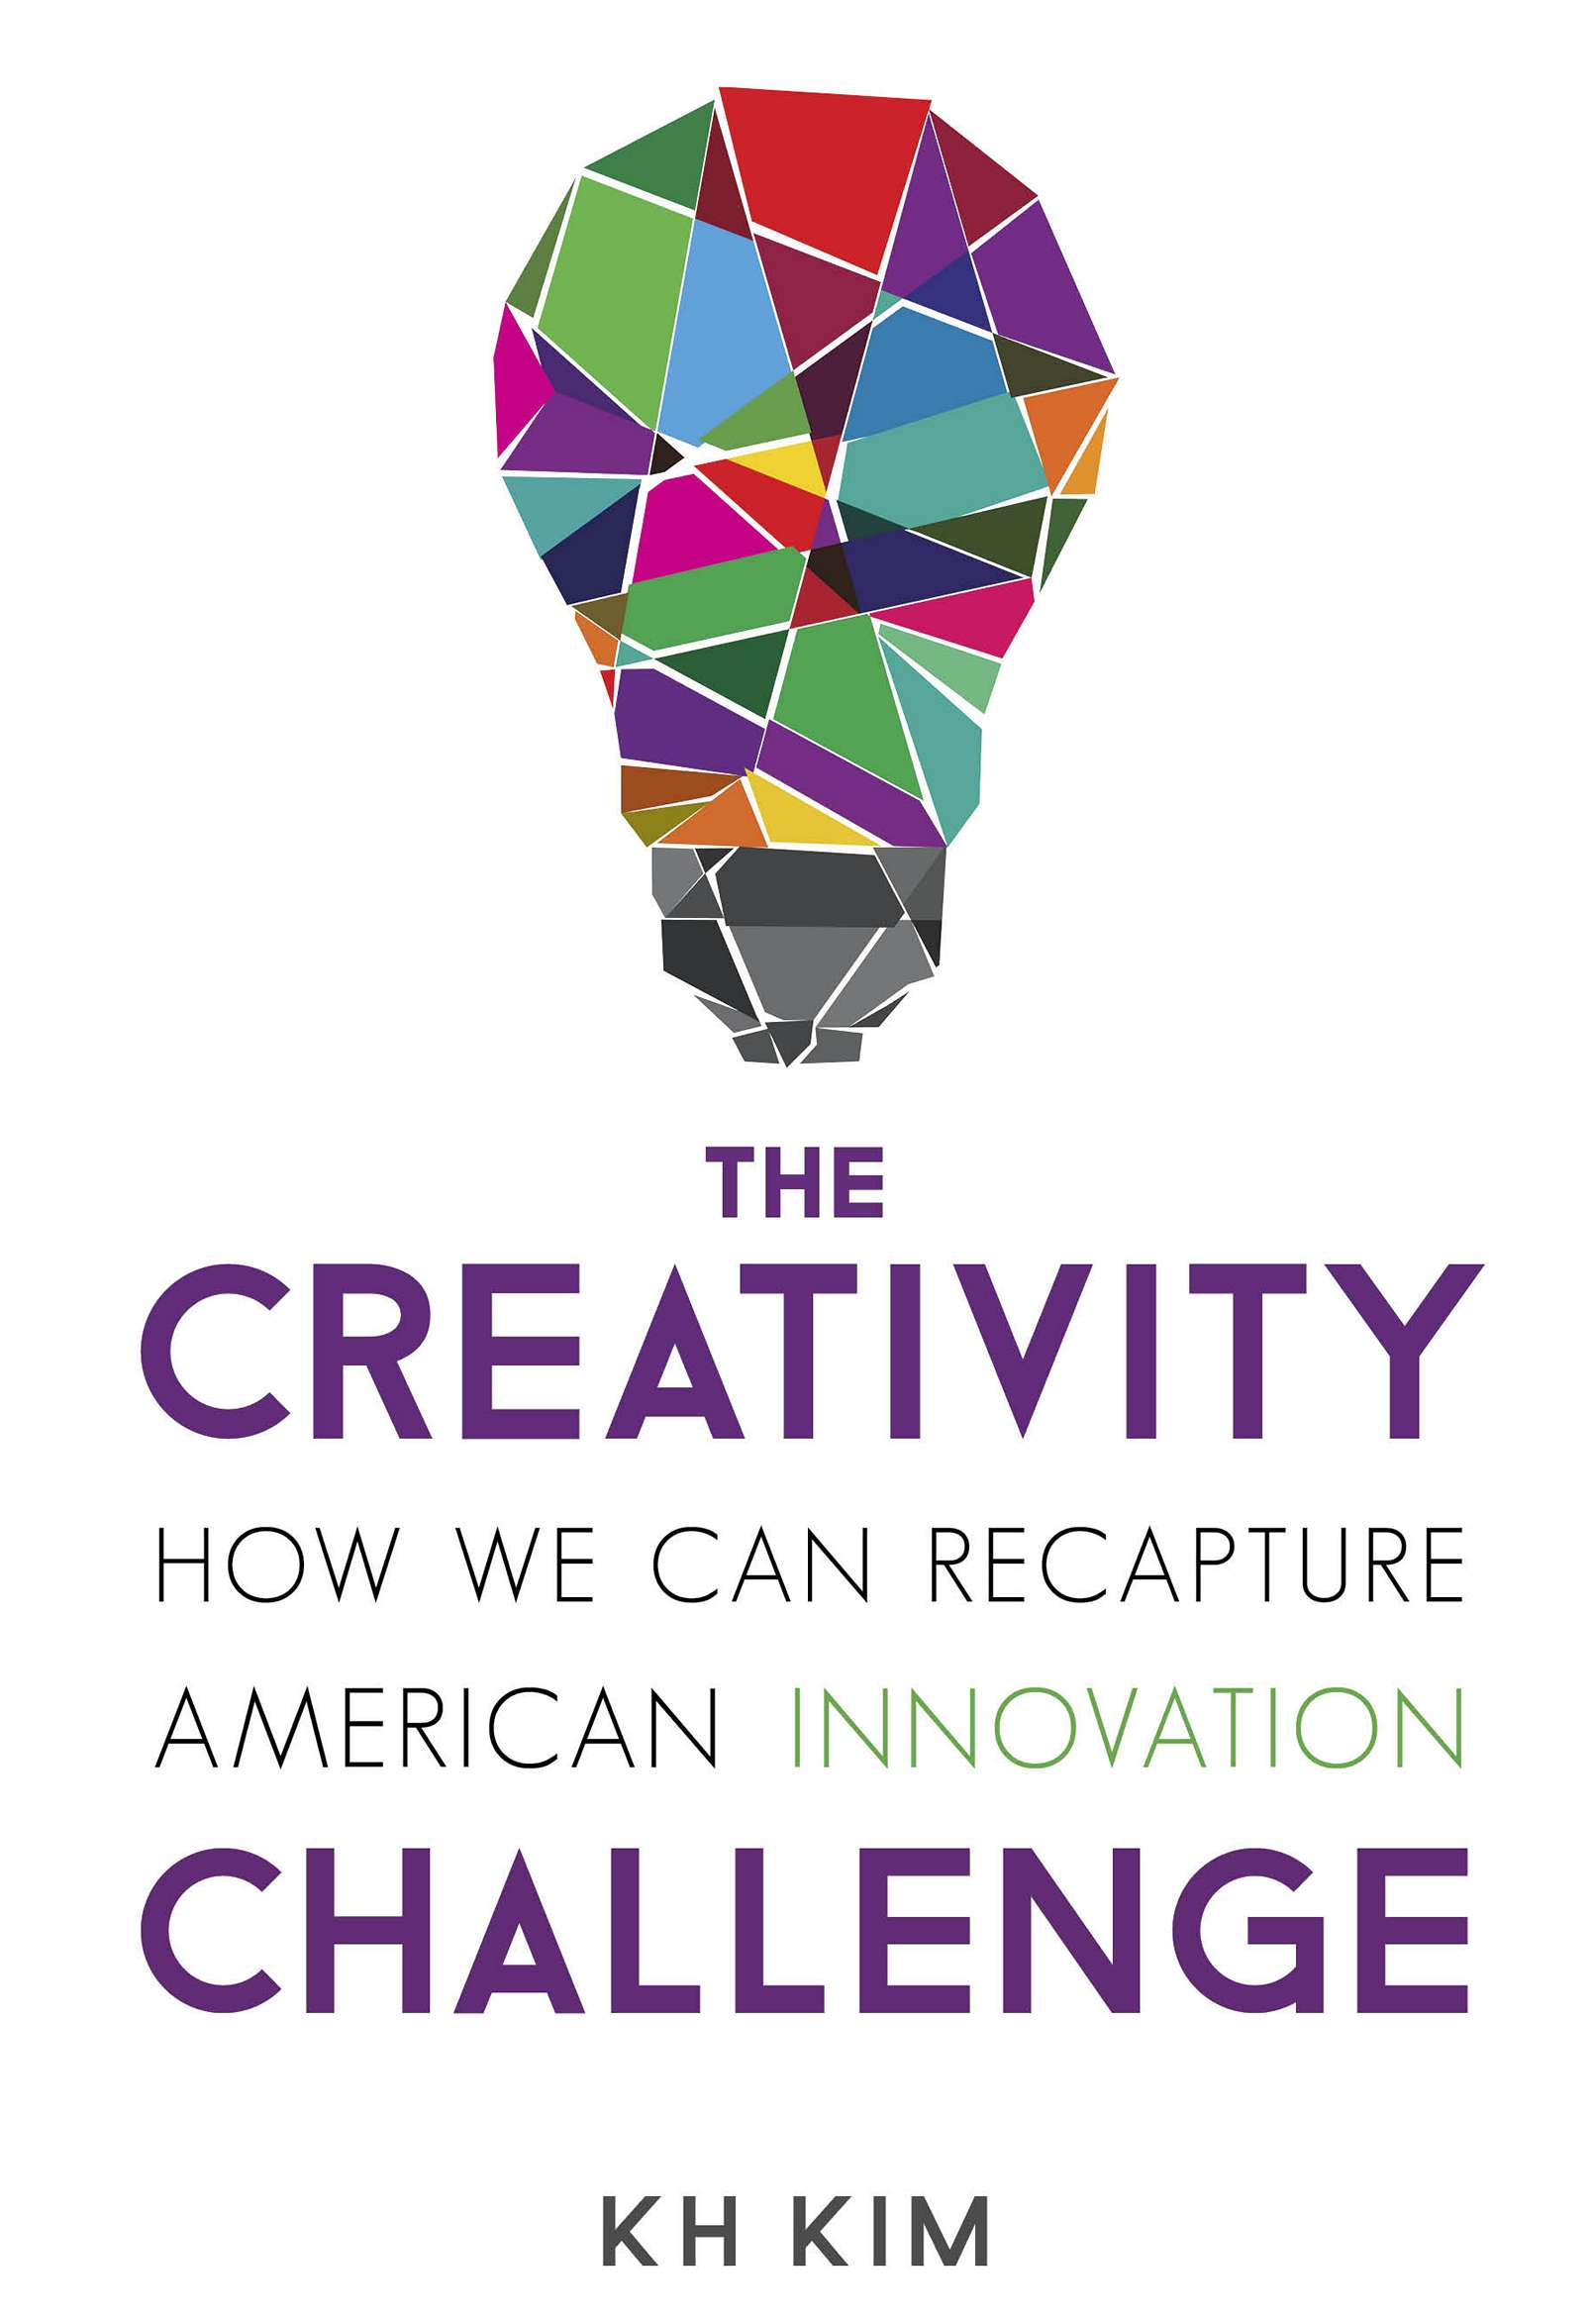 The Creativity Challenge How We Can Recapture American Innovation